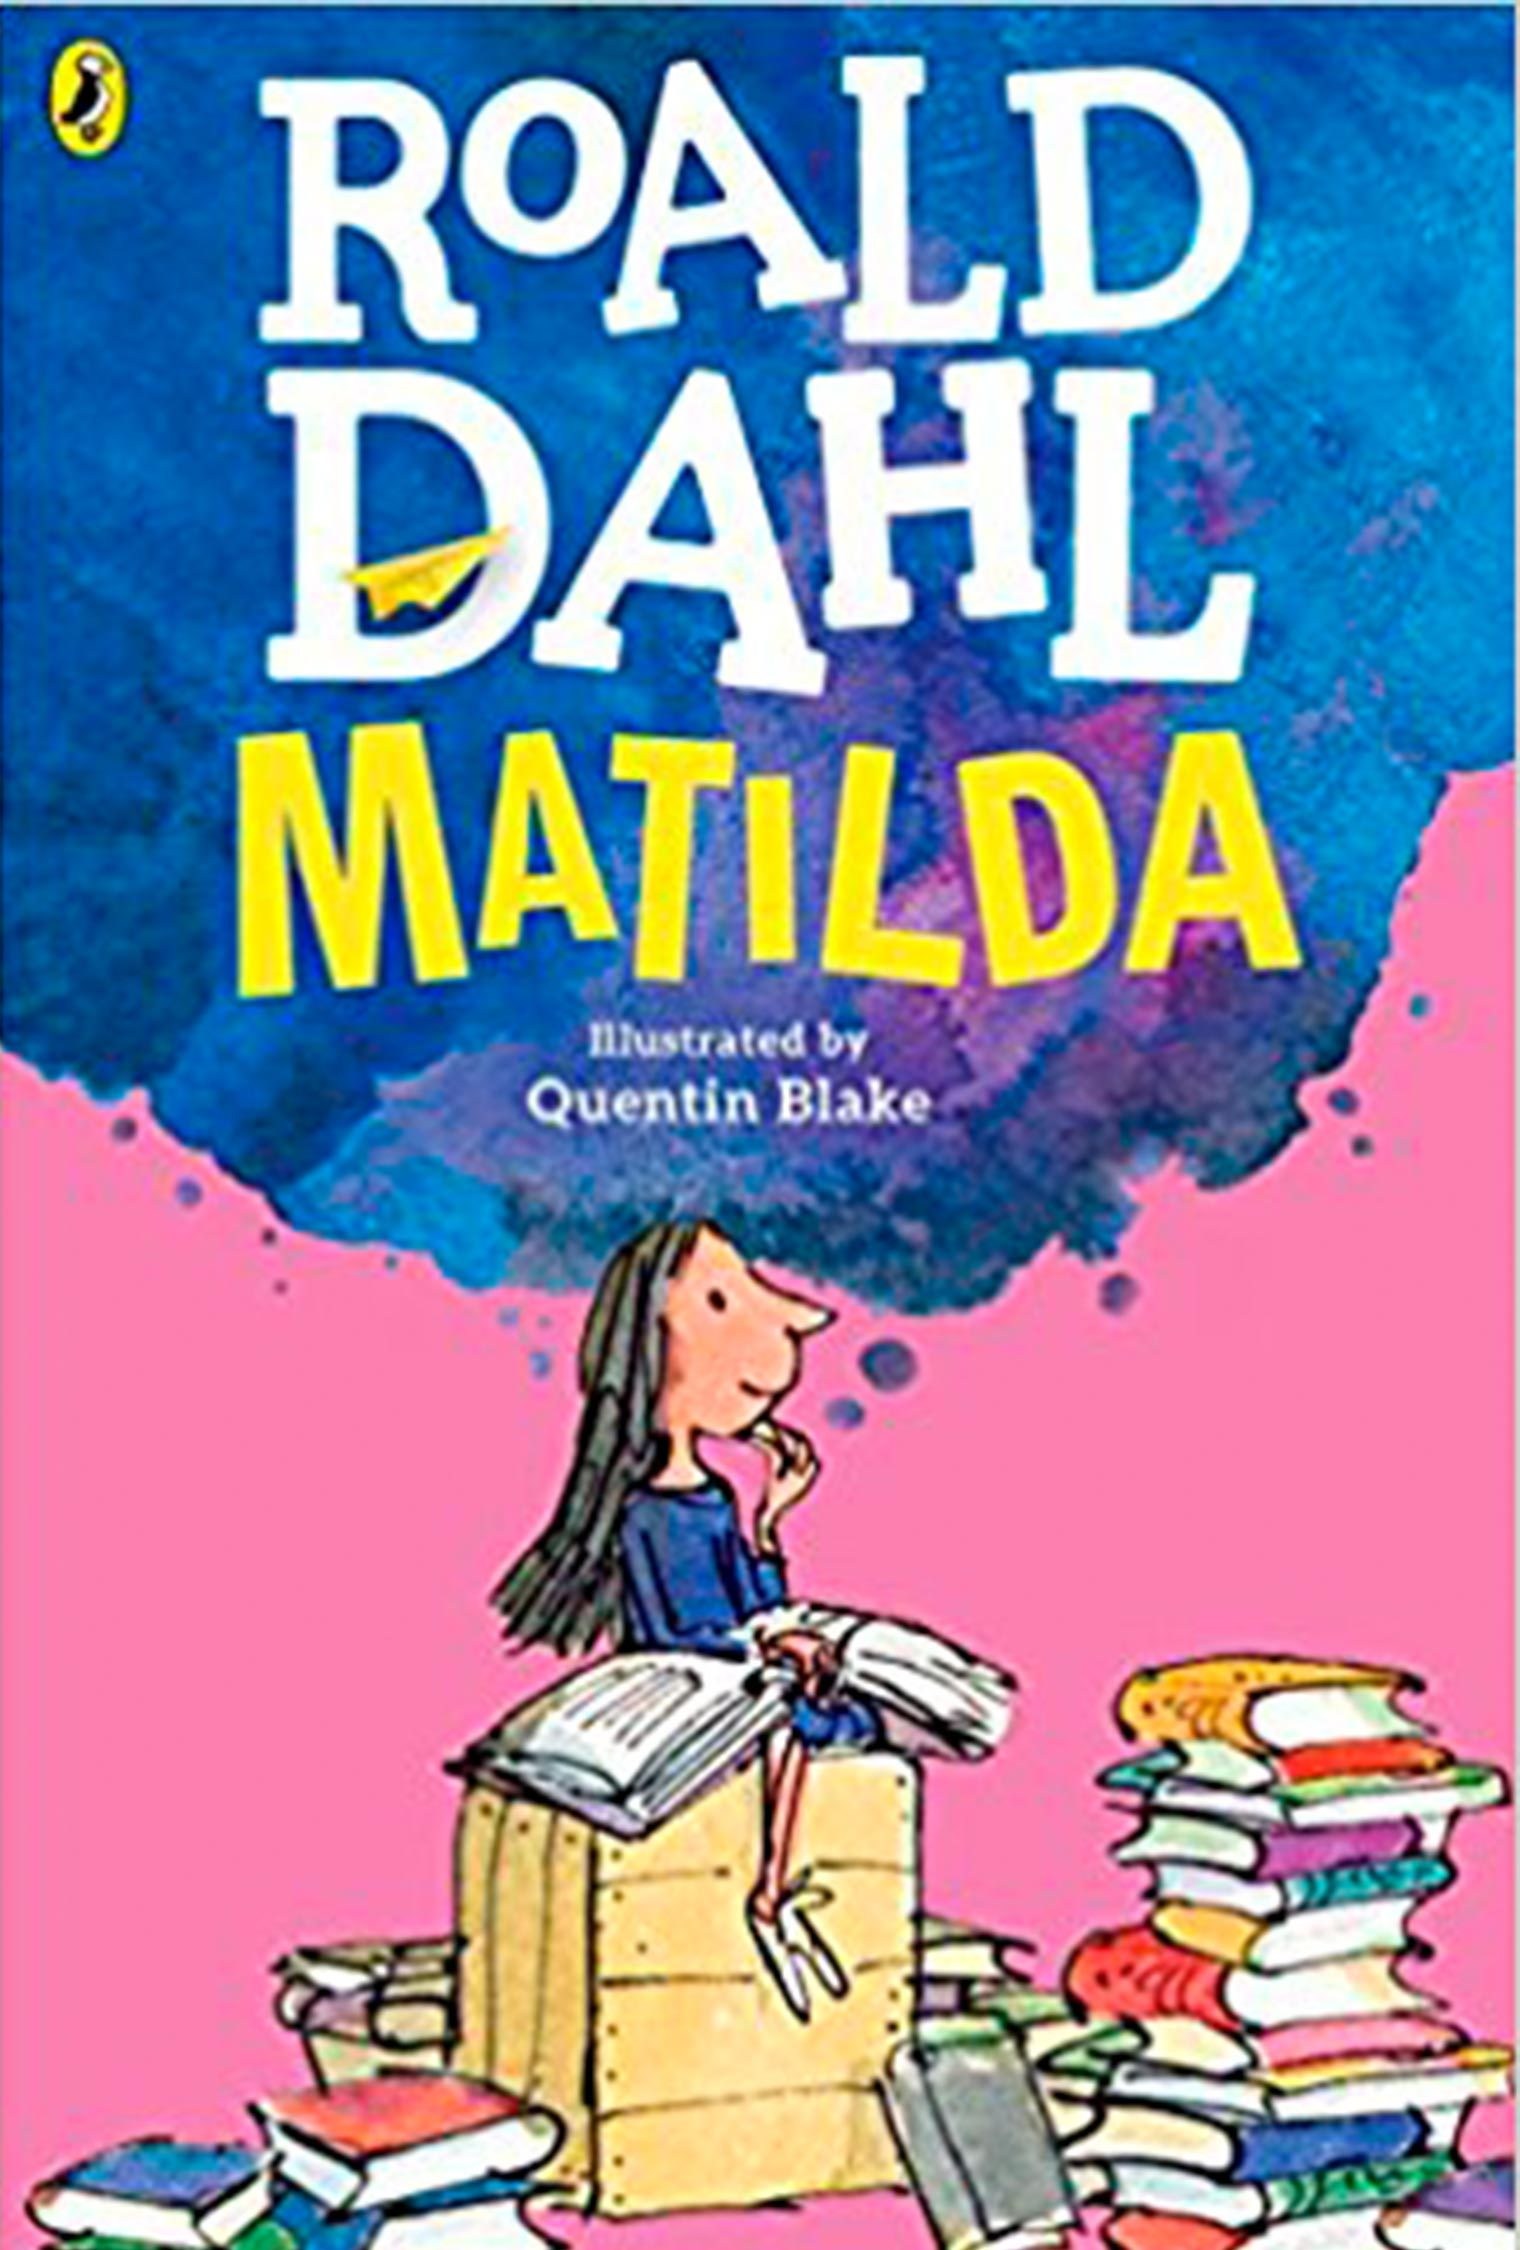 Matilda classic best children's books